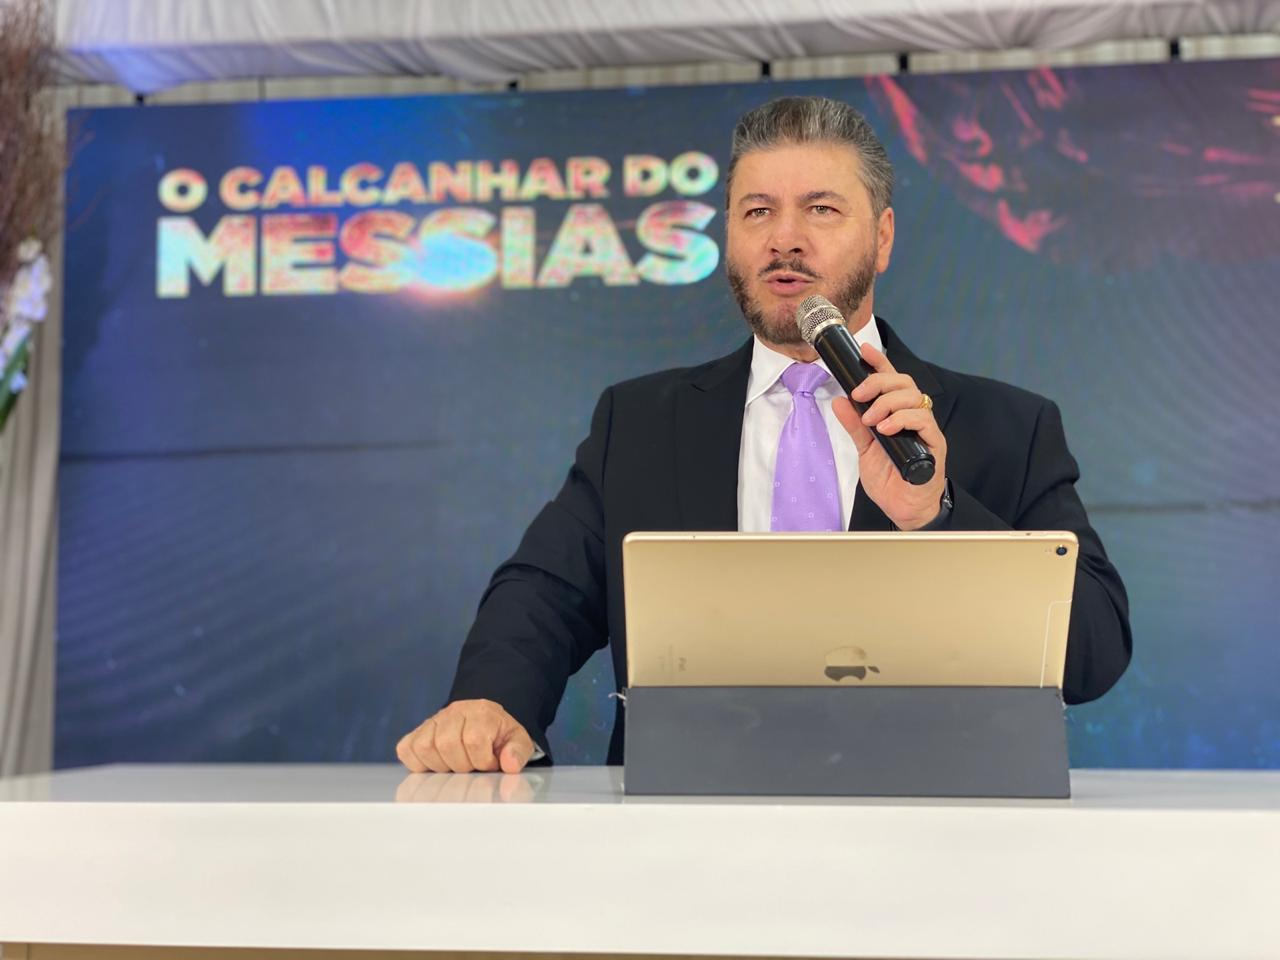 """Somos a geração do calcanhar do Messias"", afirma o Pr. Joel Engel"